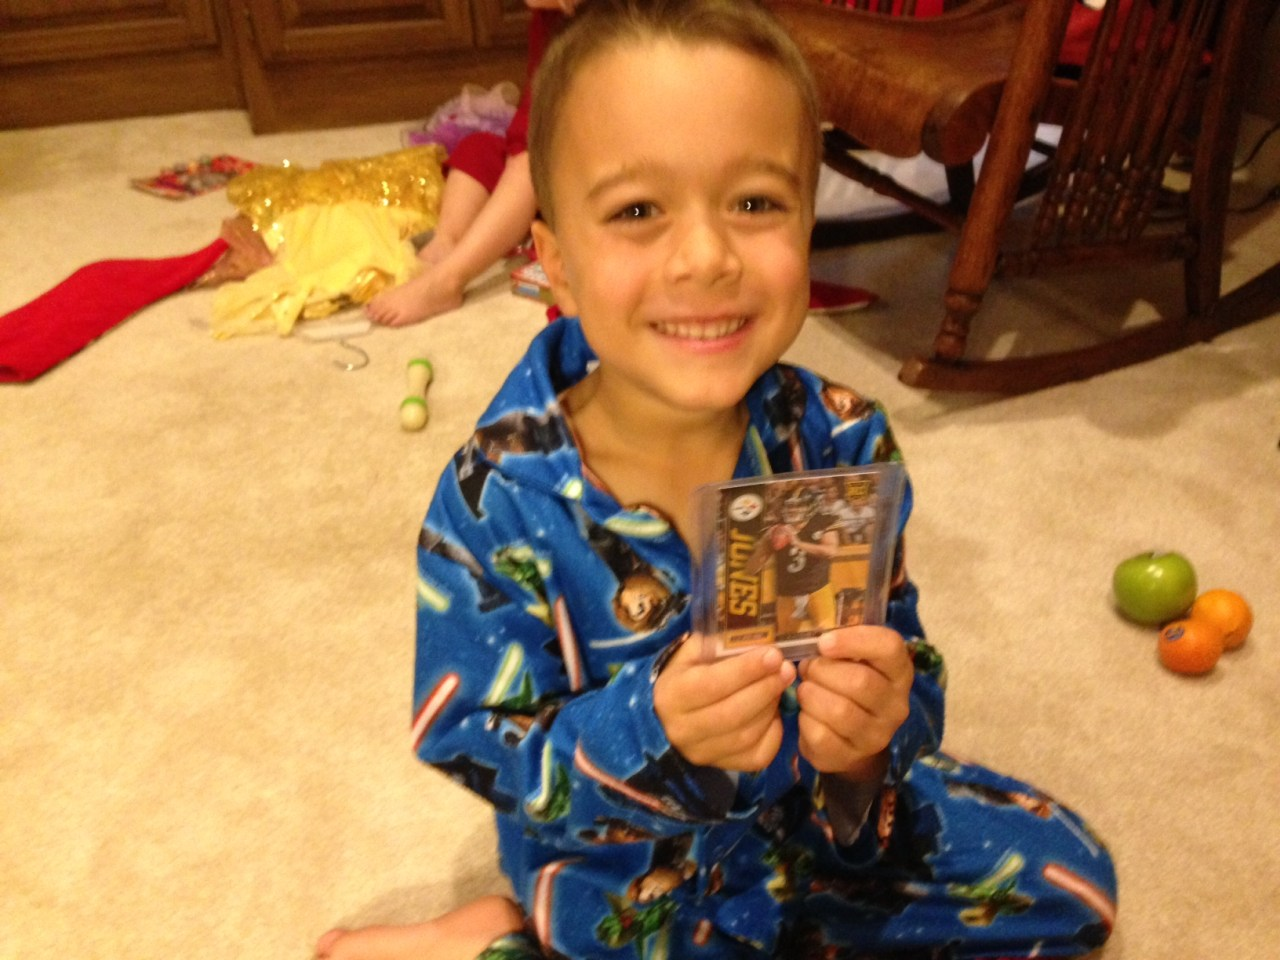 Josh with his new Landry Jones Rookie Card.